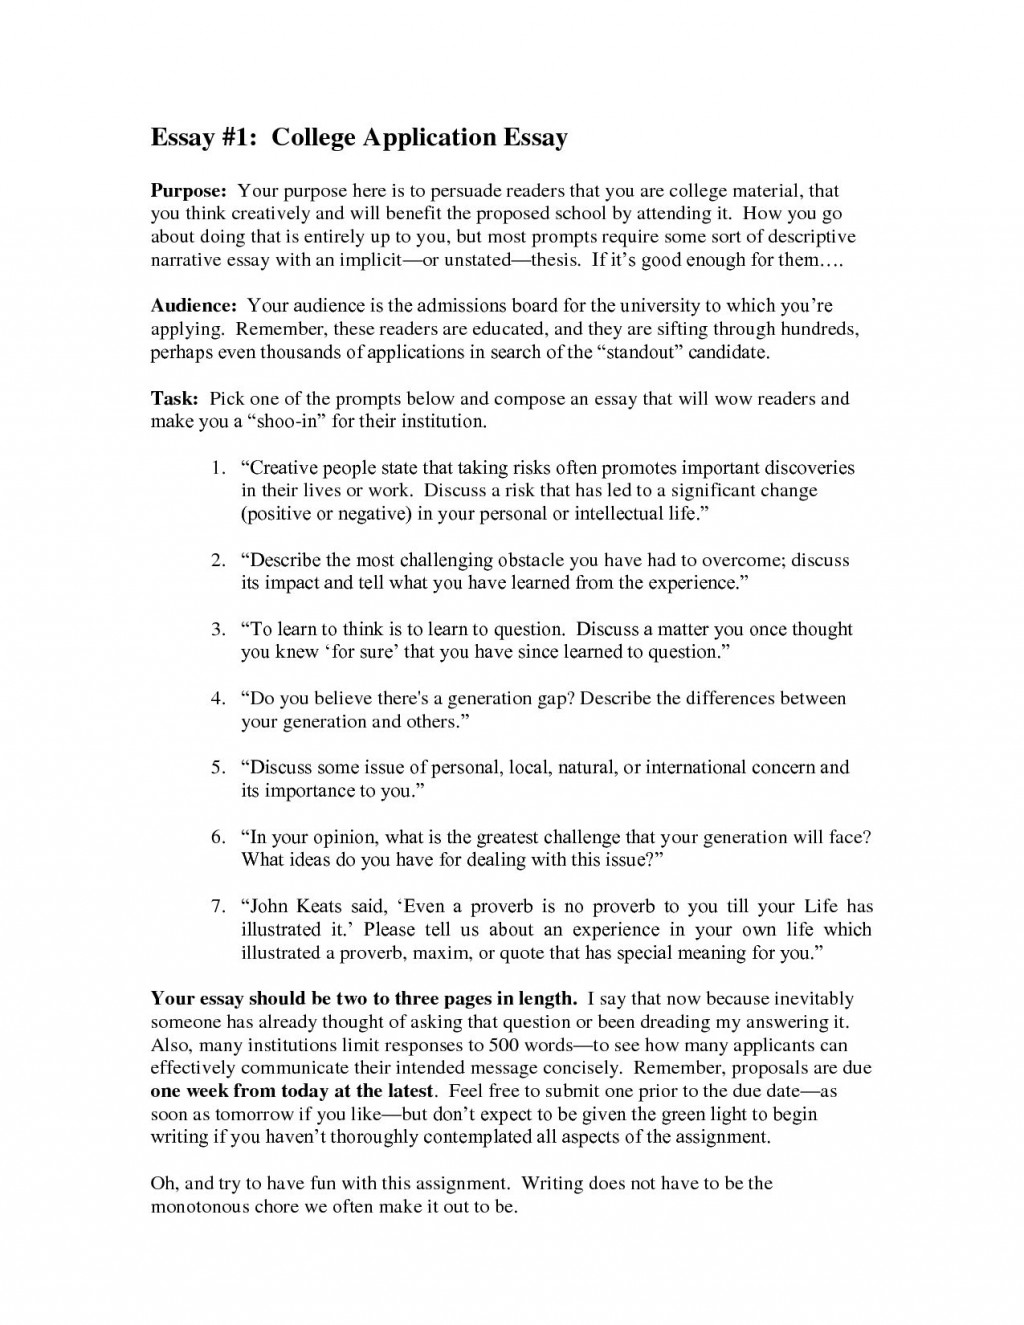 006 Interesting Research Paper Topics Biology Fearsome Marine Large